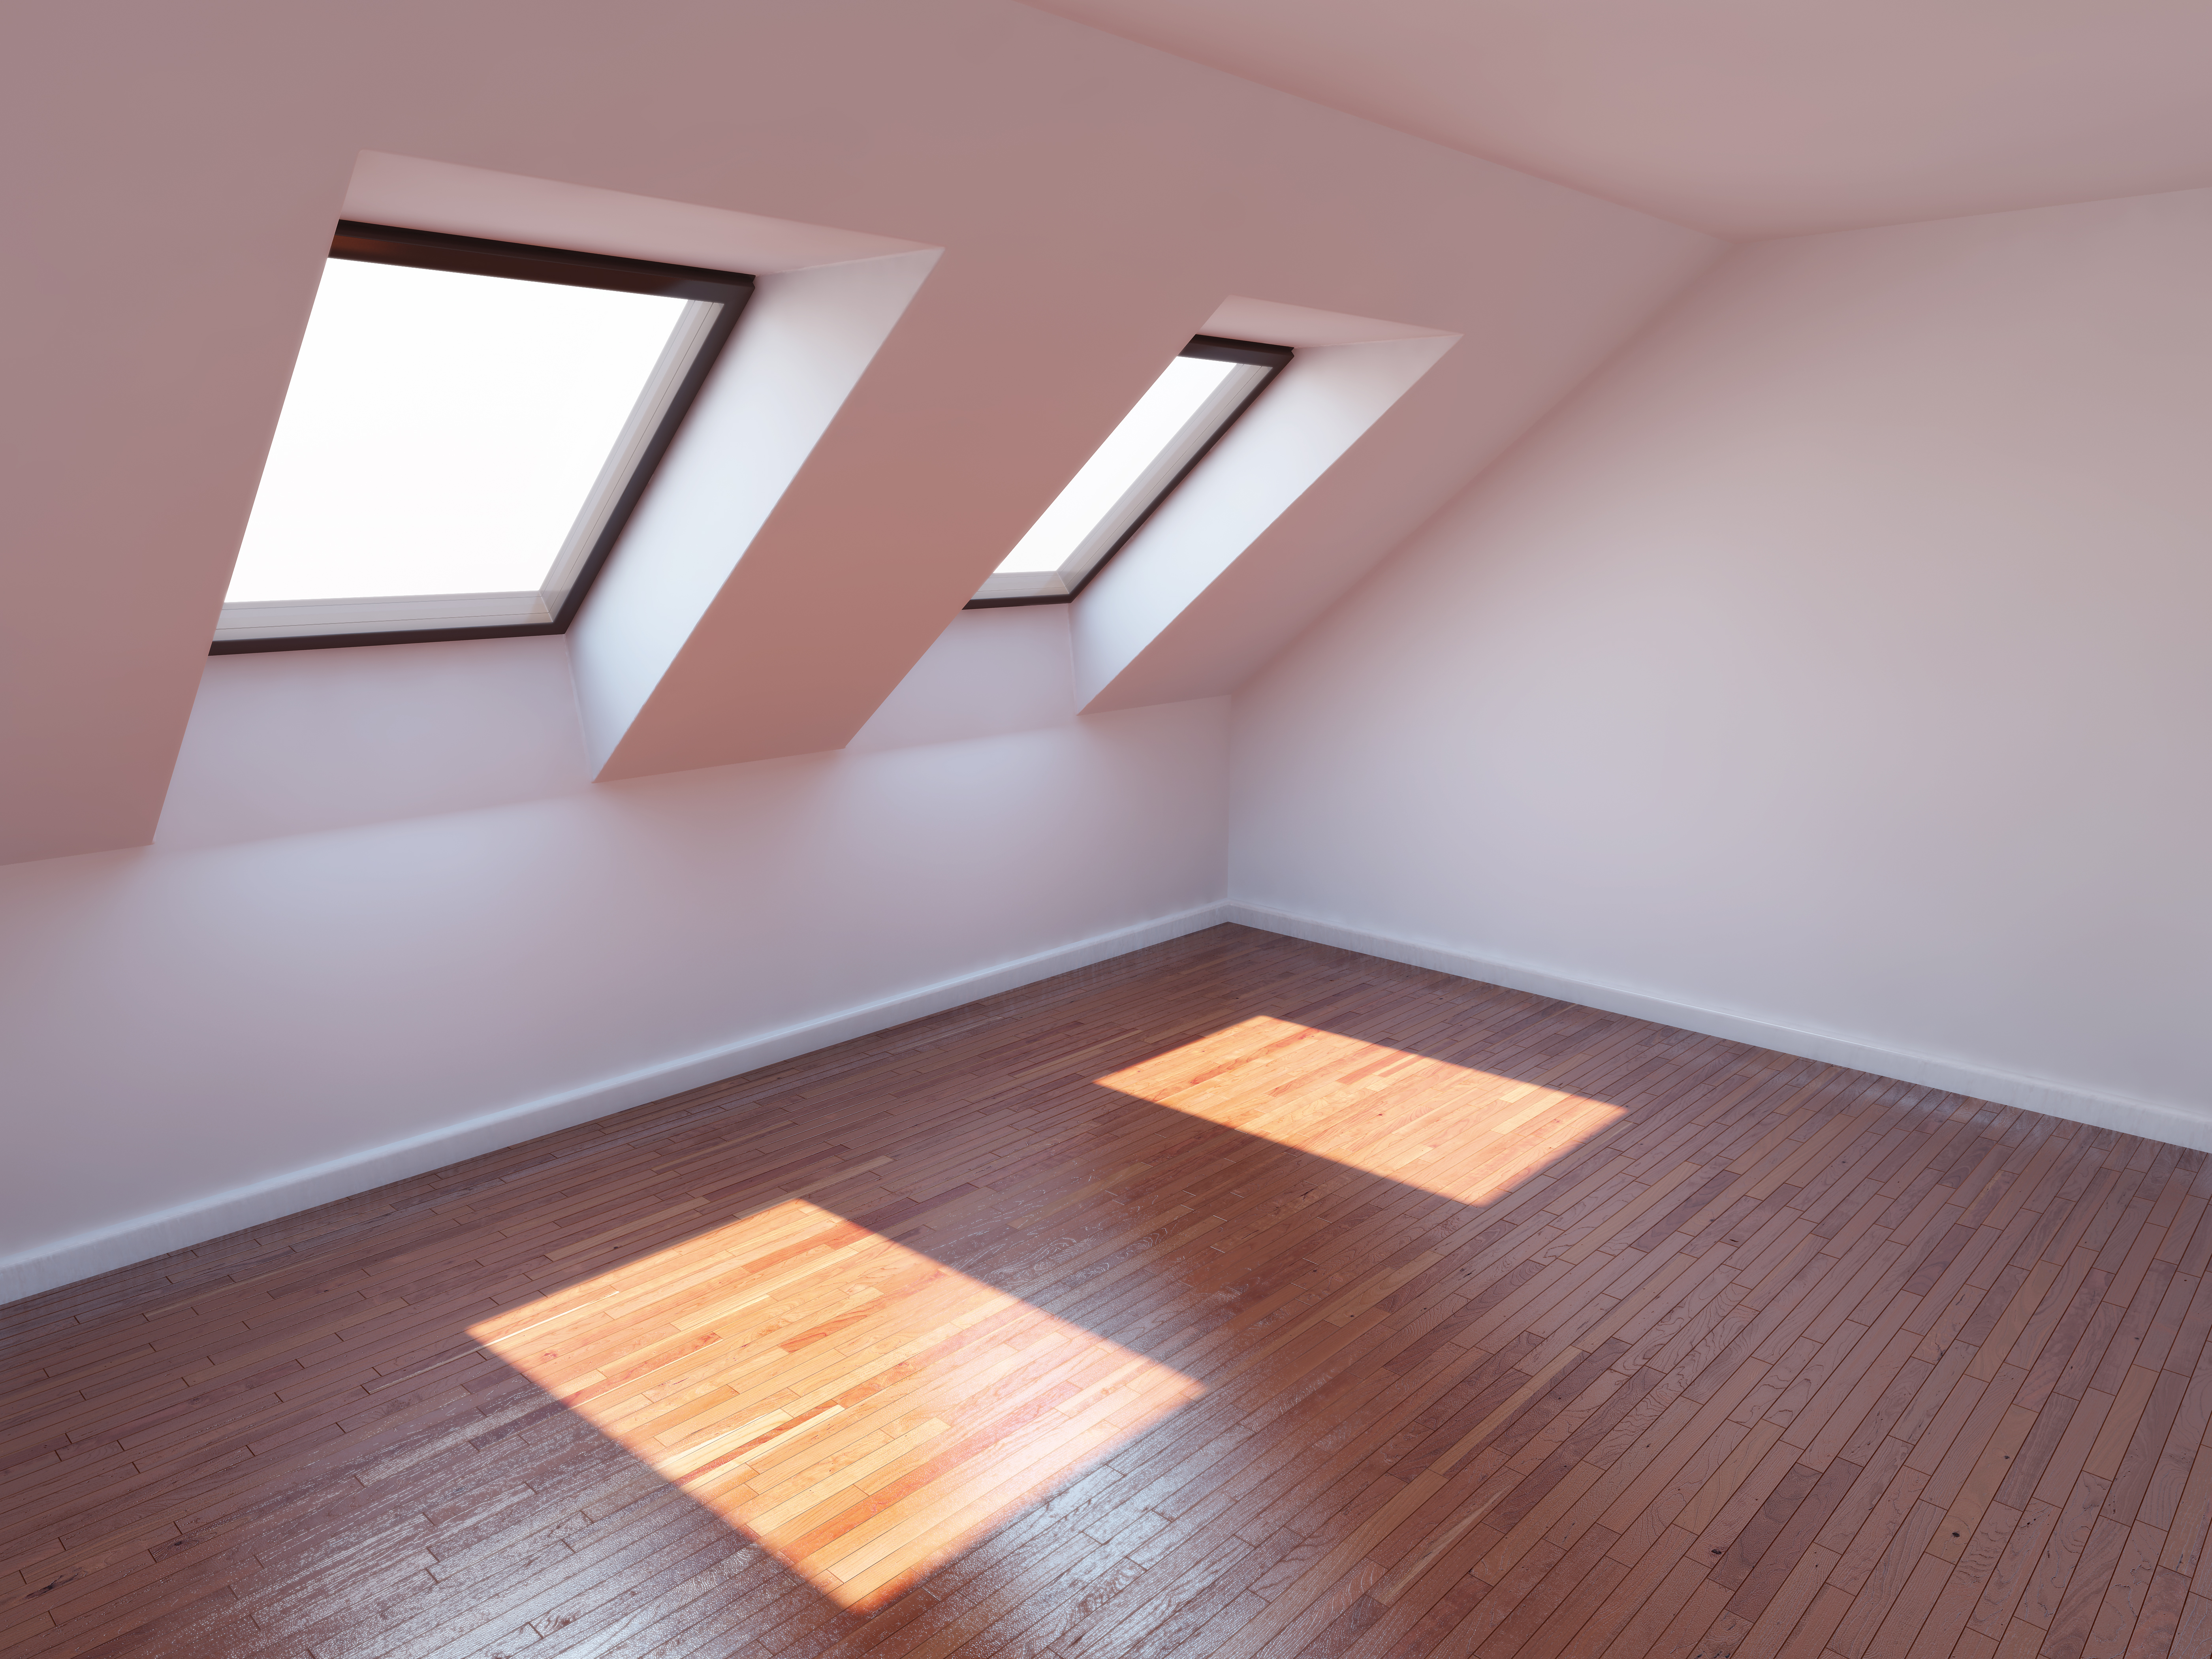 And If Your Room Needs Venting Or More Airflow You Can Even Install Models Of Skylights That Open